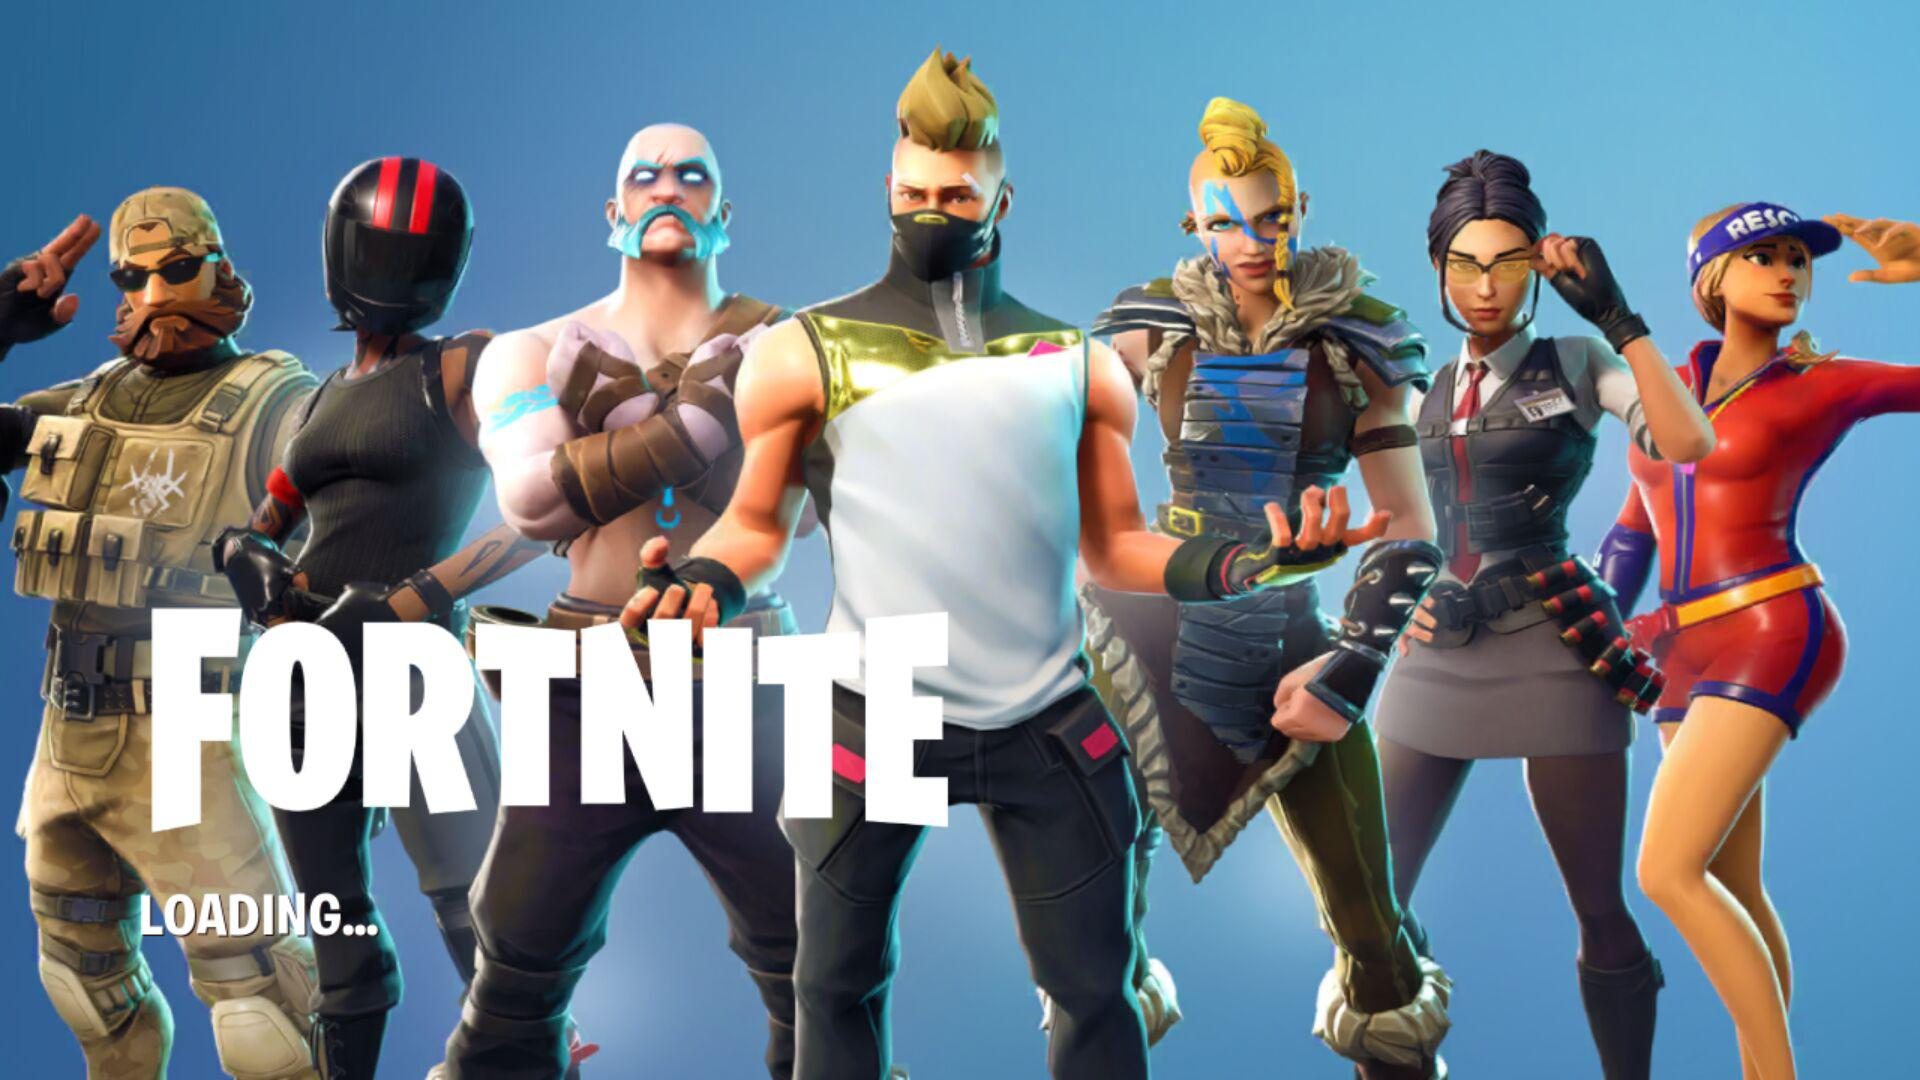 Fortnite 6.02.0-4440378-Android Screen 4